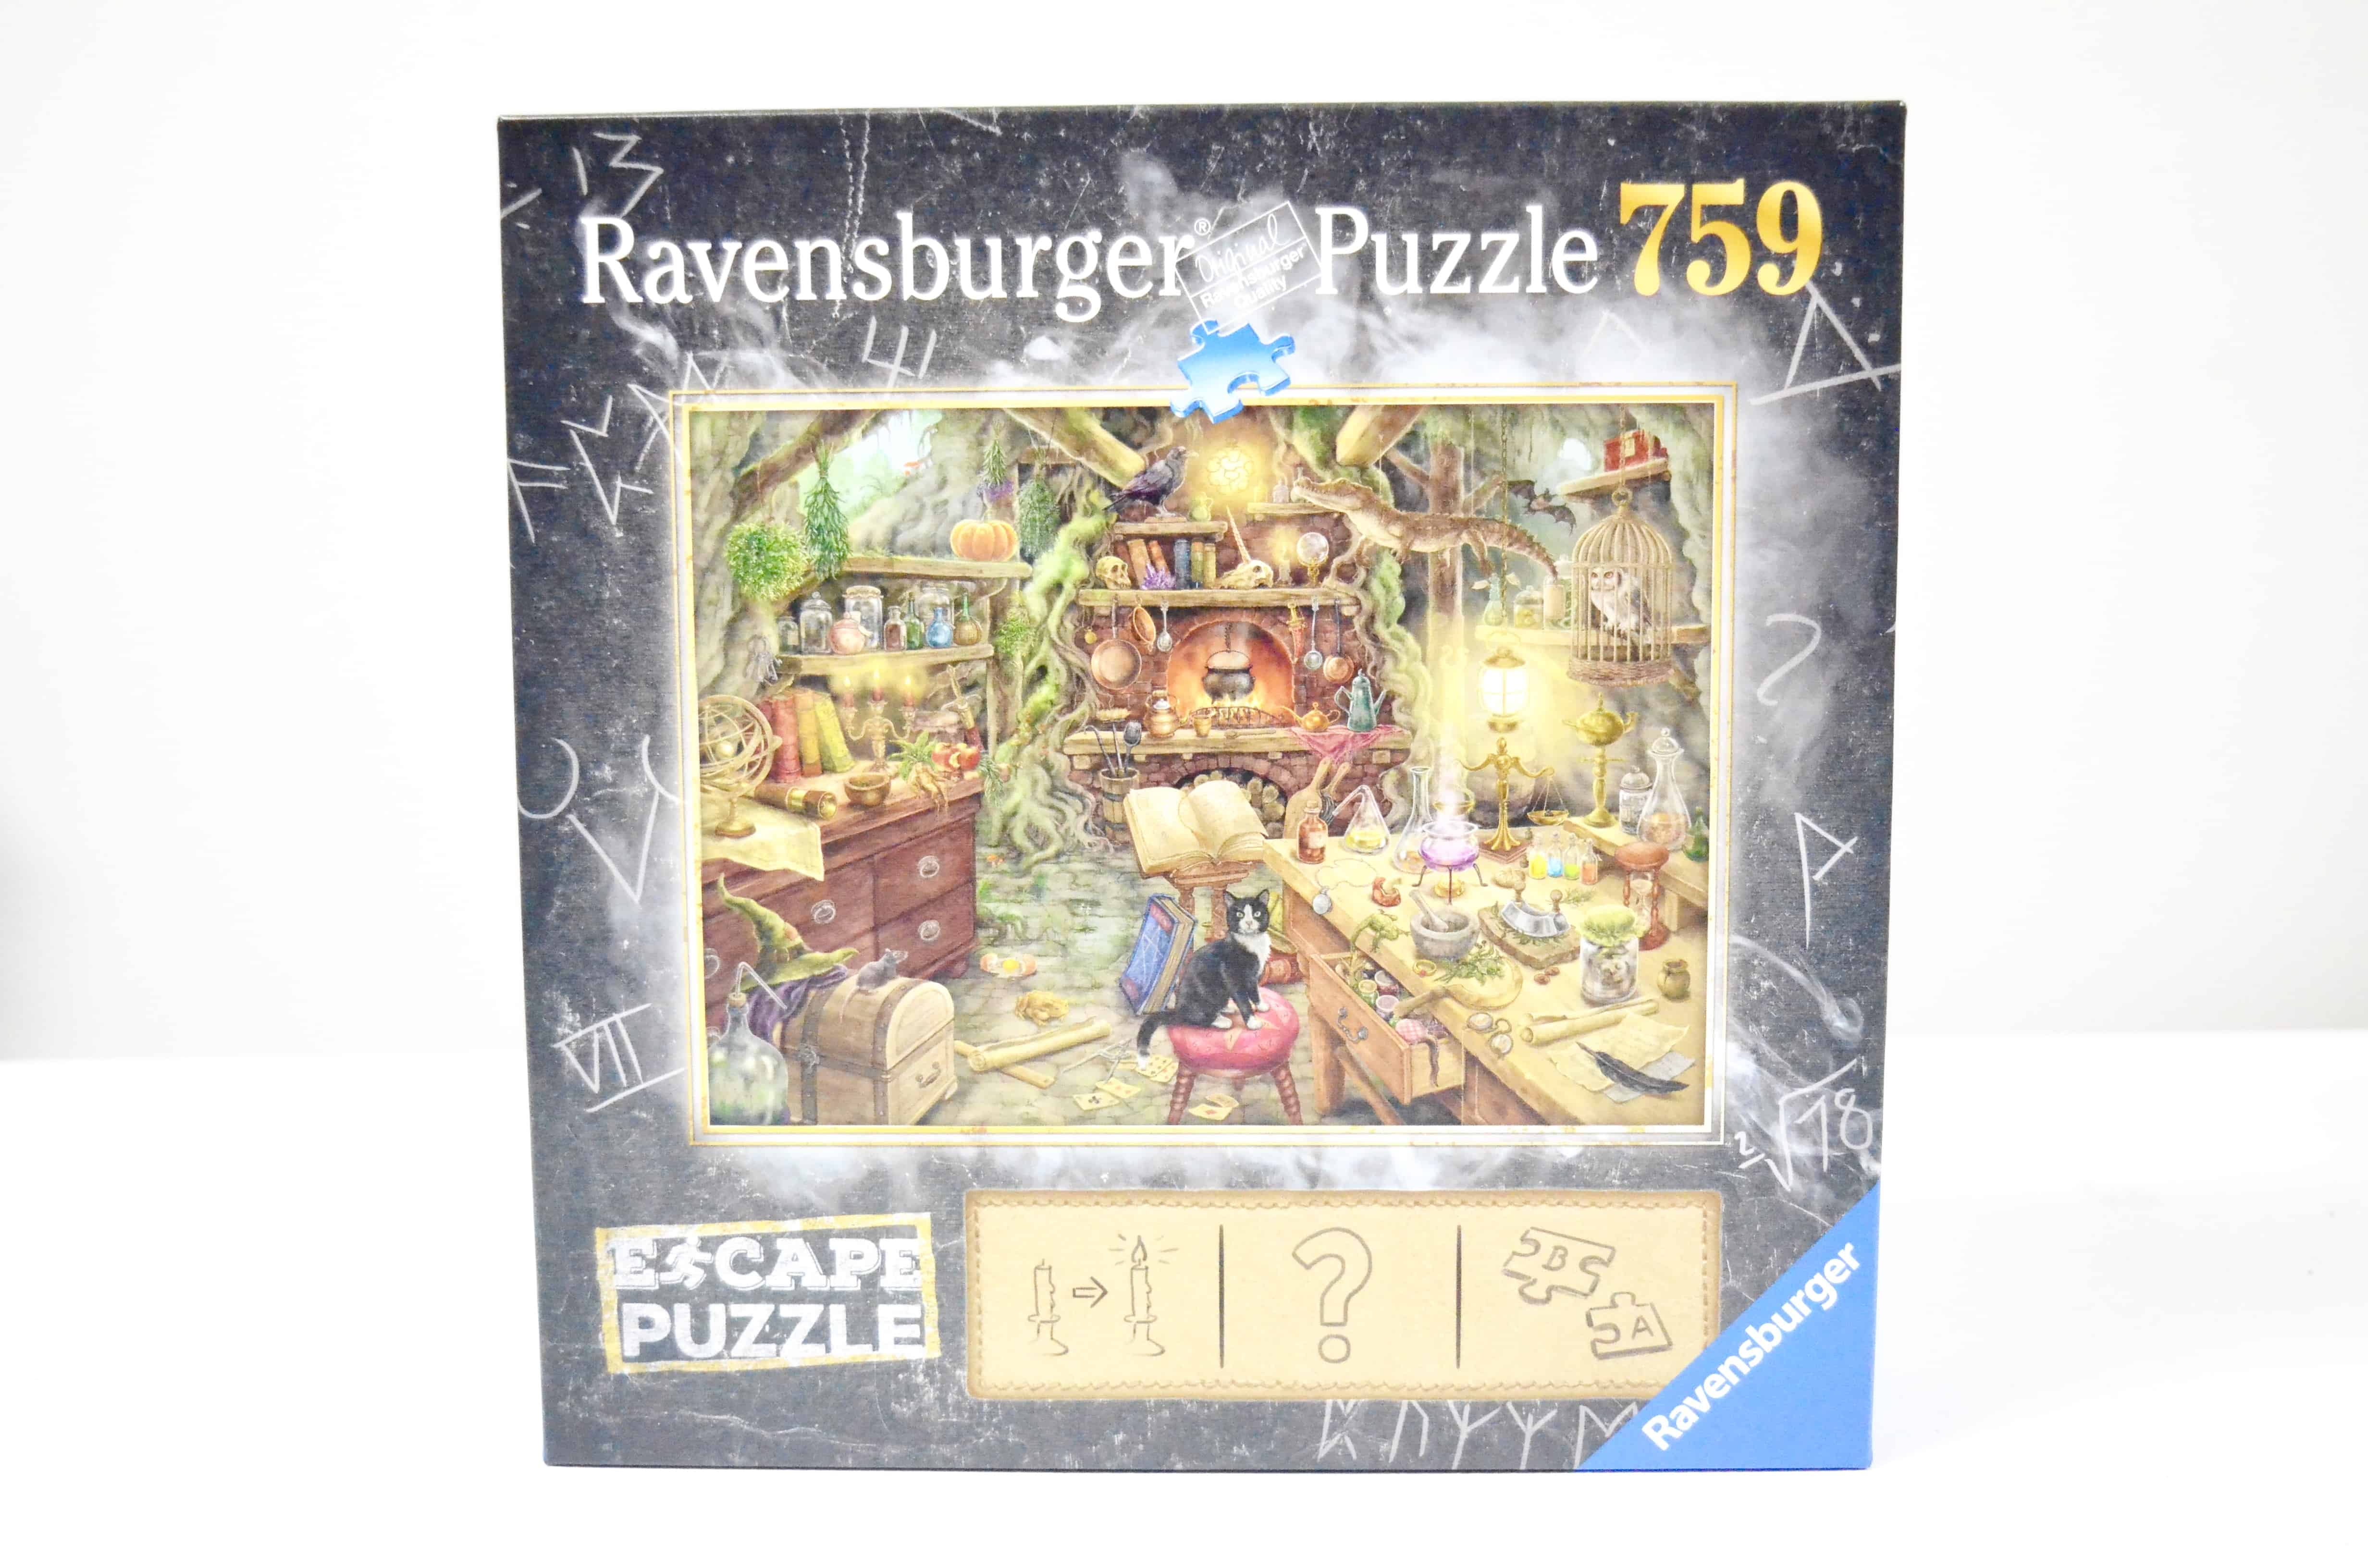 Escape Room + Puzzle in One! Escape Puzzles by Ravensburger